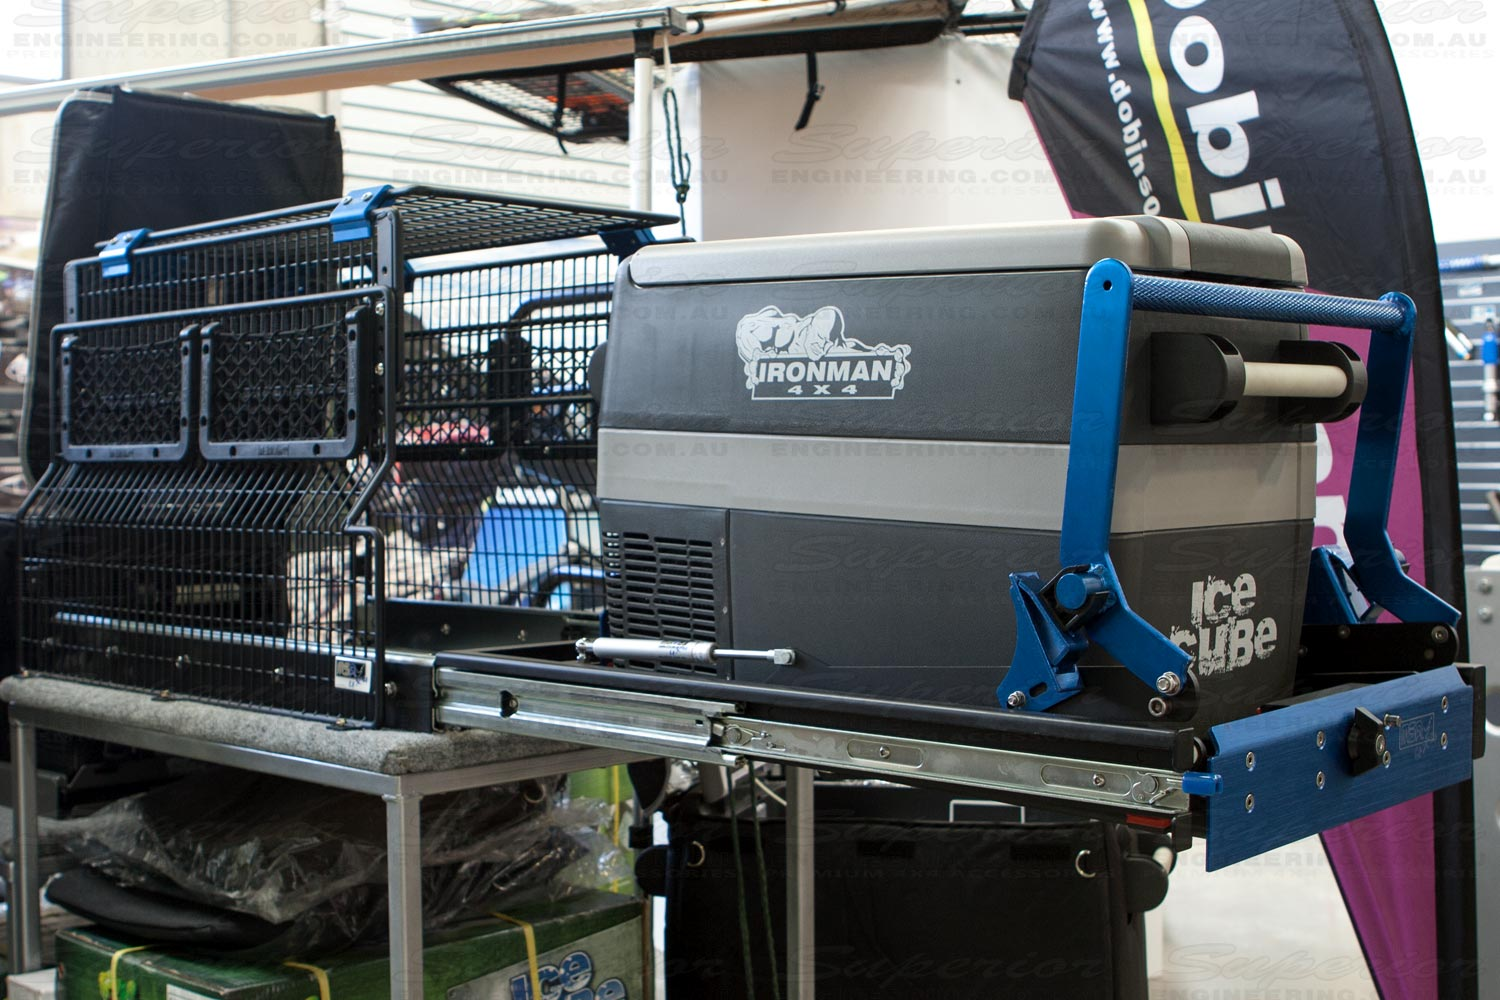 In-store display of the MSA 4x4 Fridge Drop Slide during the opening process